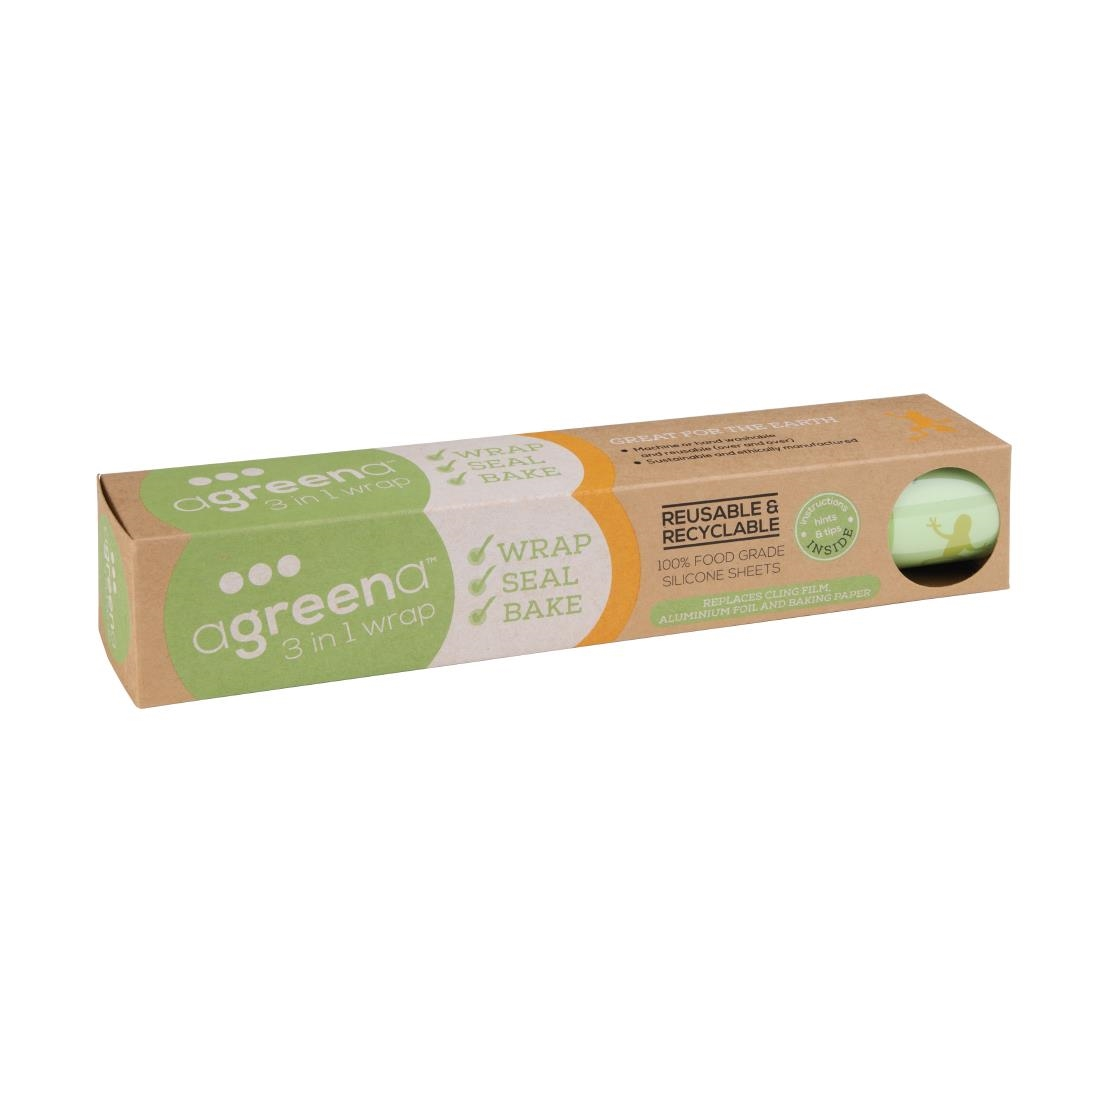 Image of Agreena Three-In-One Reusable Food Wraps 300 x 450mm (Pack of 2) Pack of 2